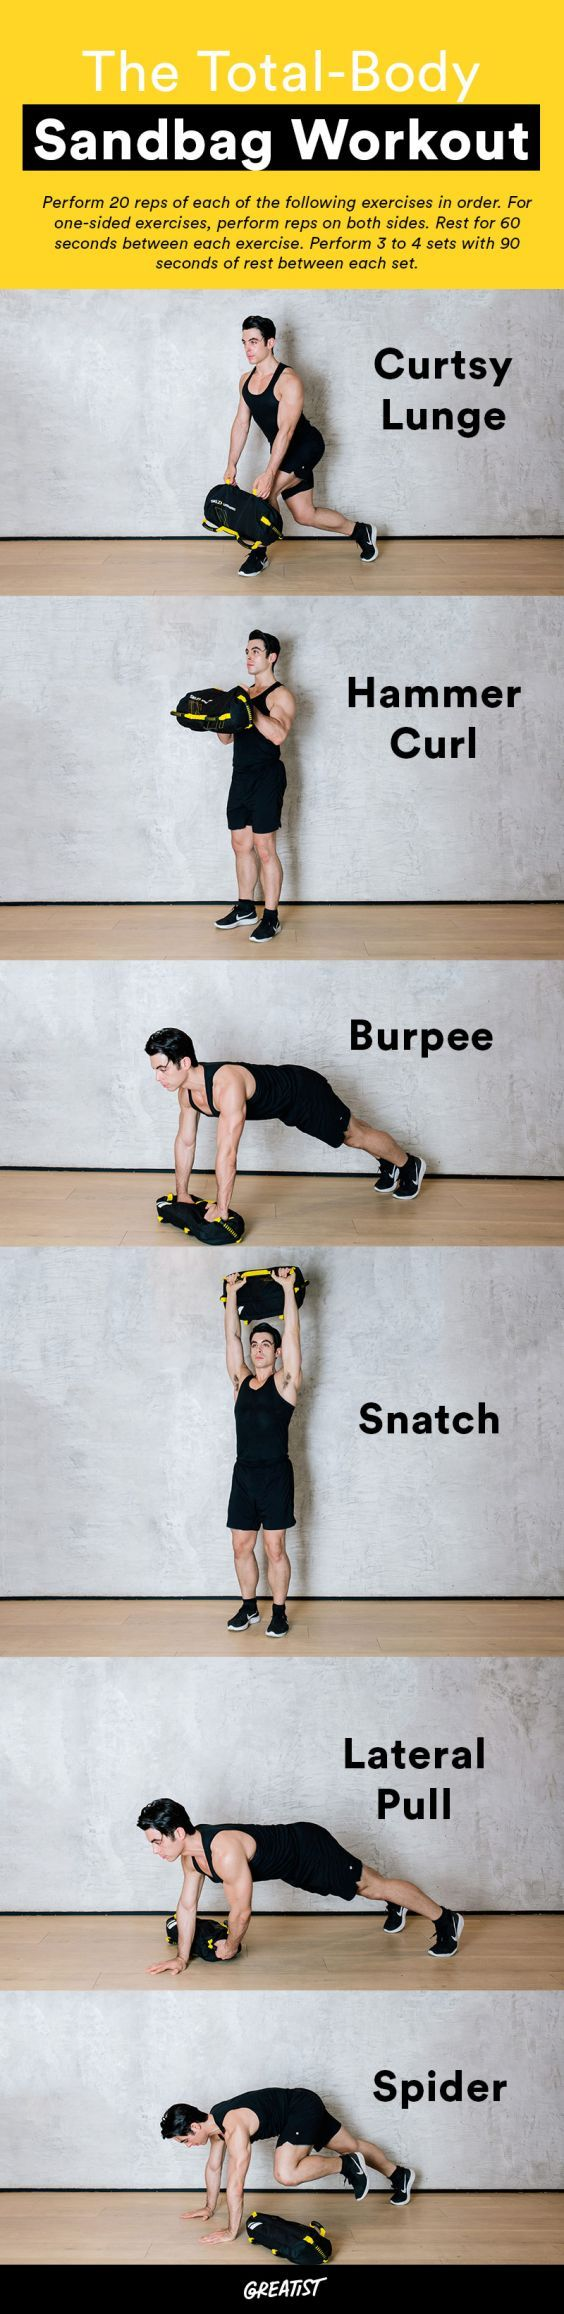 There's no sandbagging this workout.  #greatist https://greatist.com/fitness/compound-exercises-sandbag-moves-for-strength